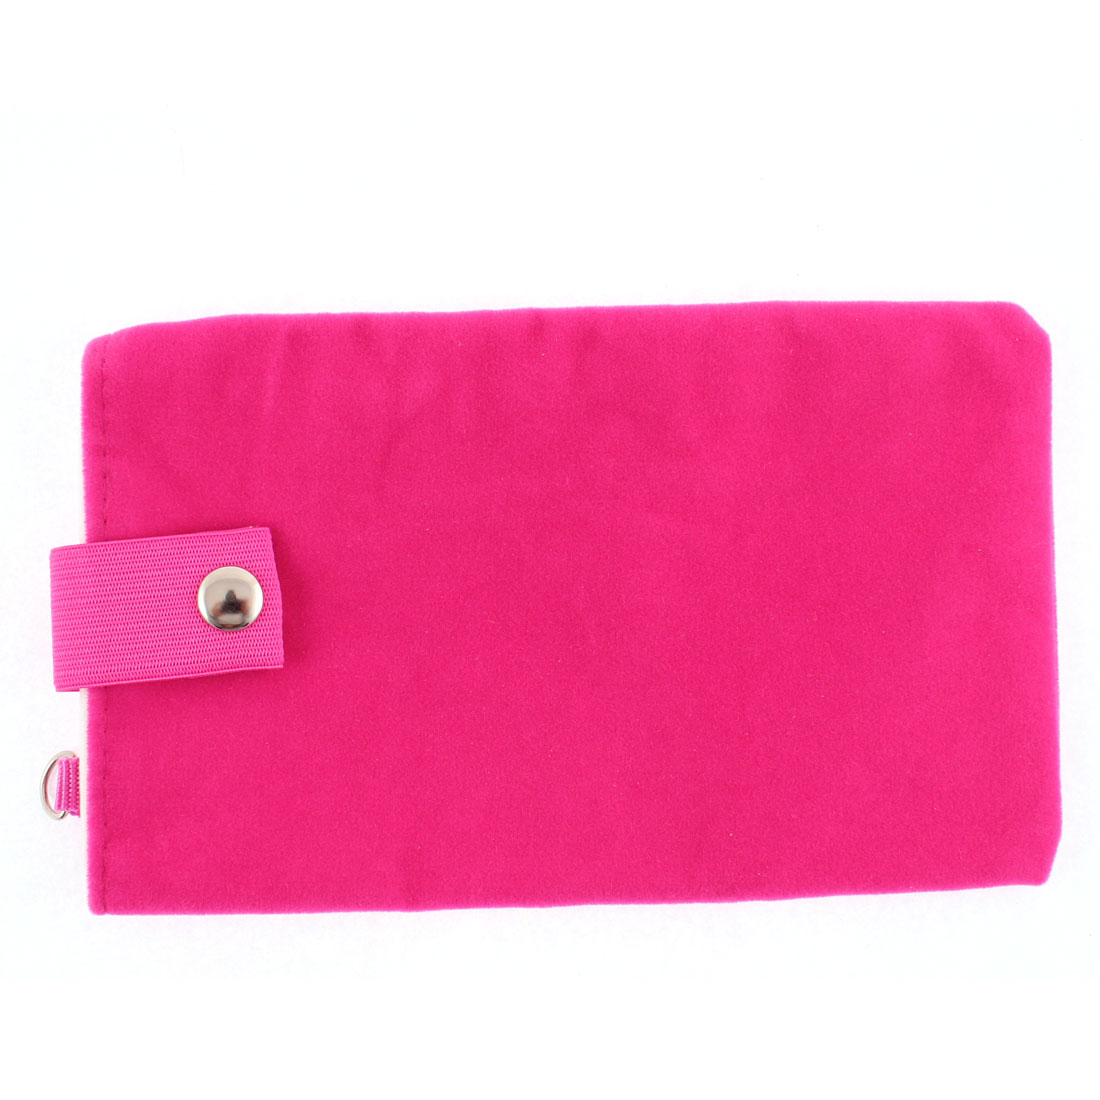 Velvet Dual Layer Magnetic Clasp Button Cell Phone Pouch Sleeve Bag Fuchsia